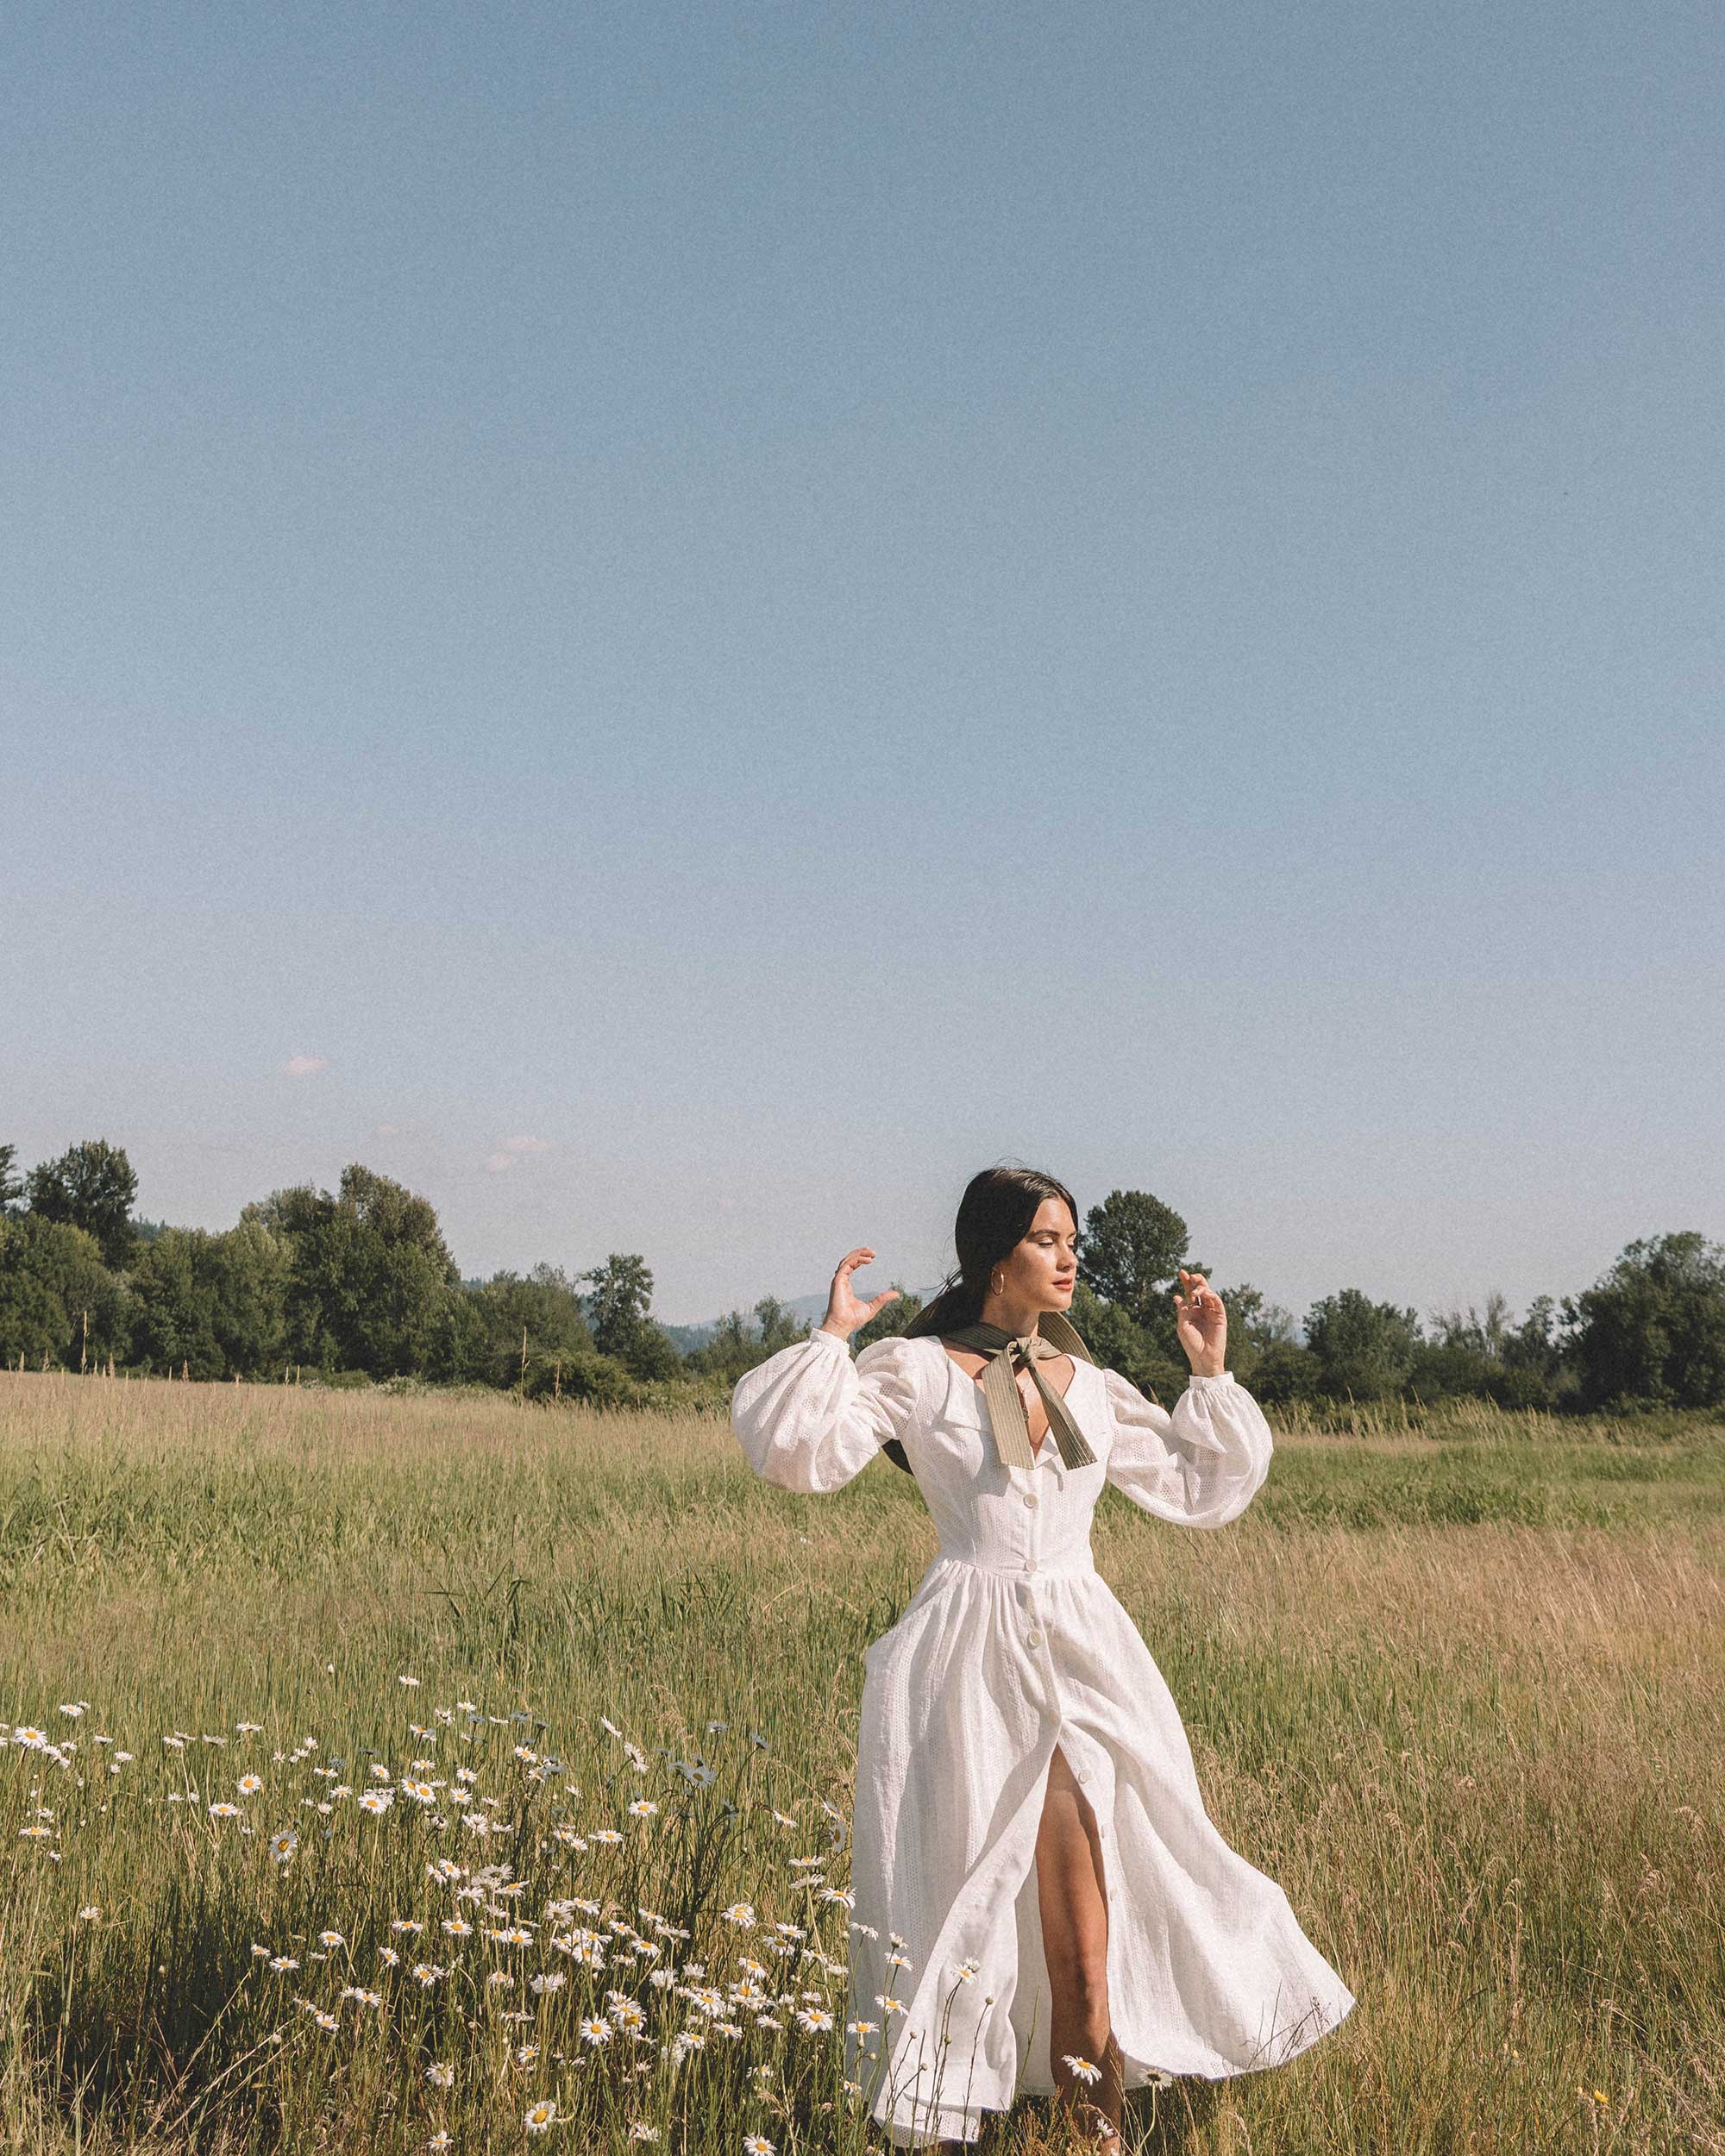 Sarah Butler of Sarah Styles wearing Poustovit White Maxi Dress with billowy sleeves and Ganni wide brim hat in Seattle   @sarahchristine -7.jpg